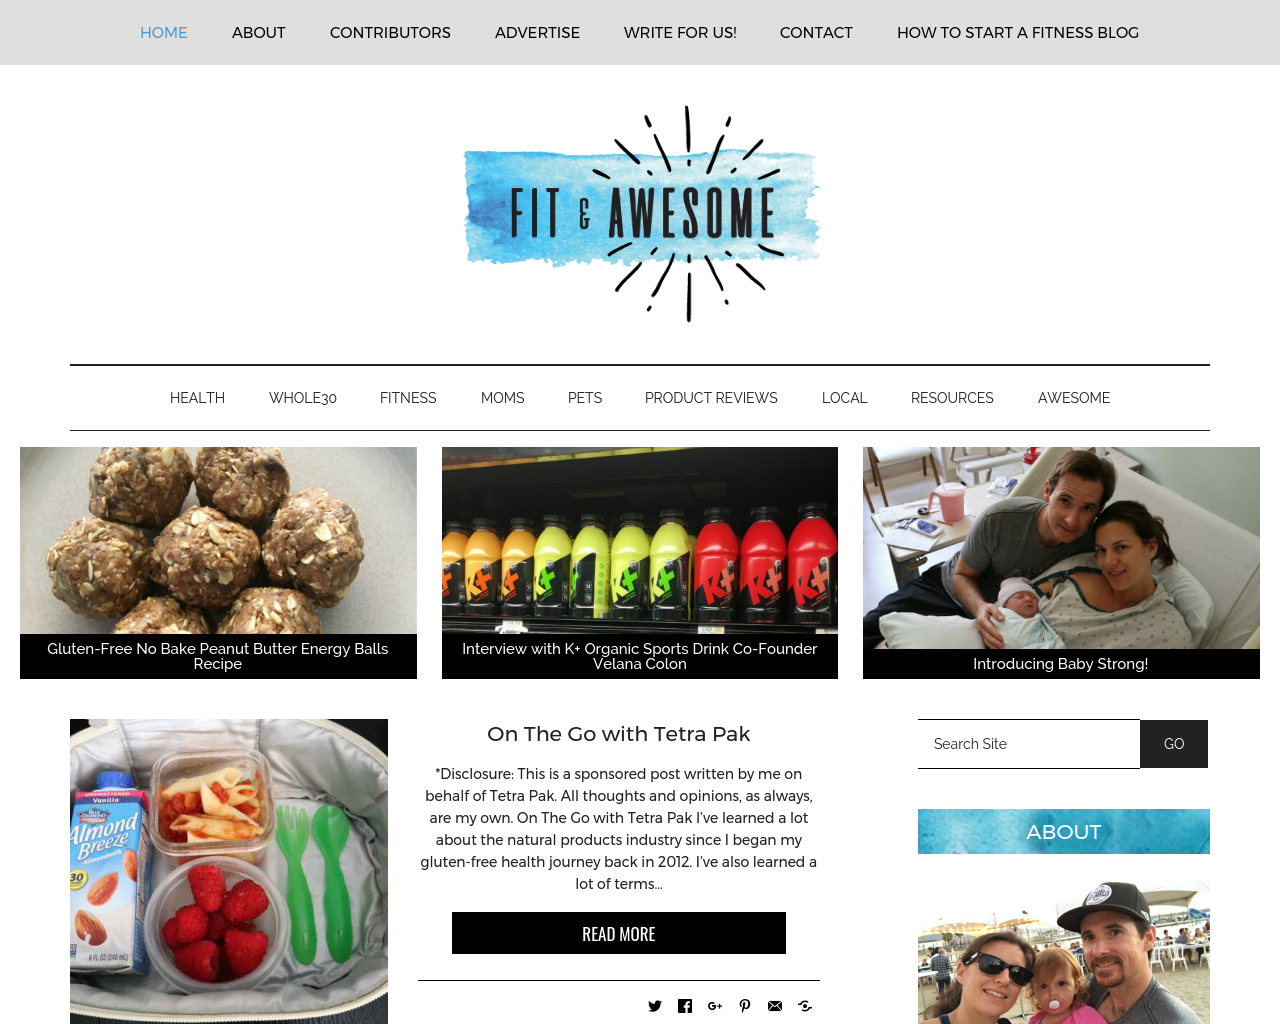 FIT-&-AWESOME-Advertising-Reviews-Pricing